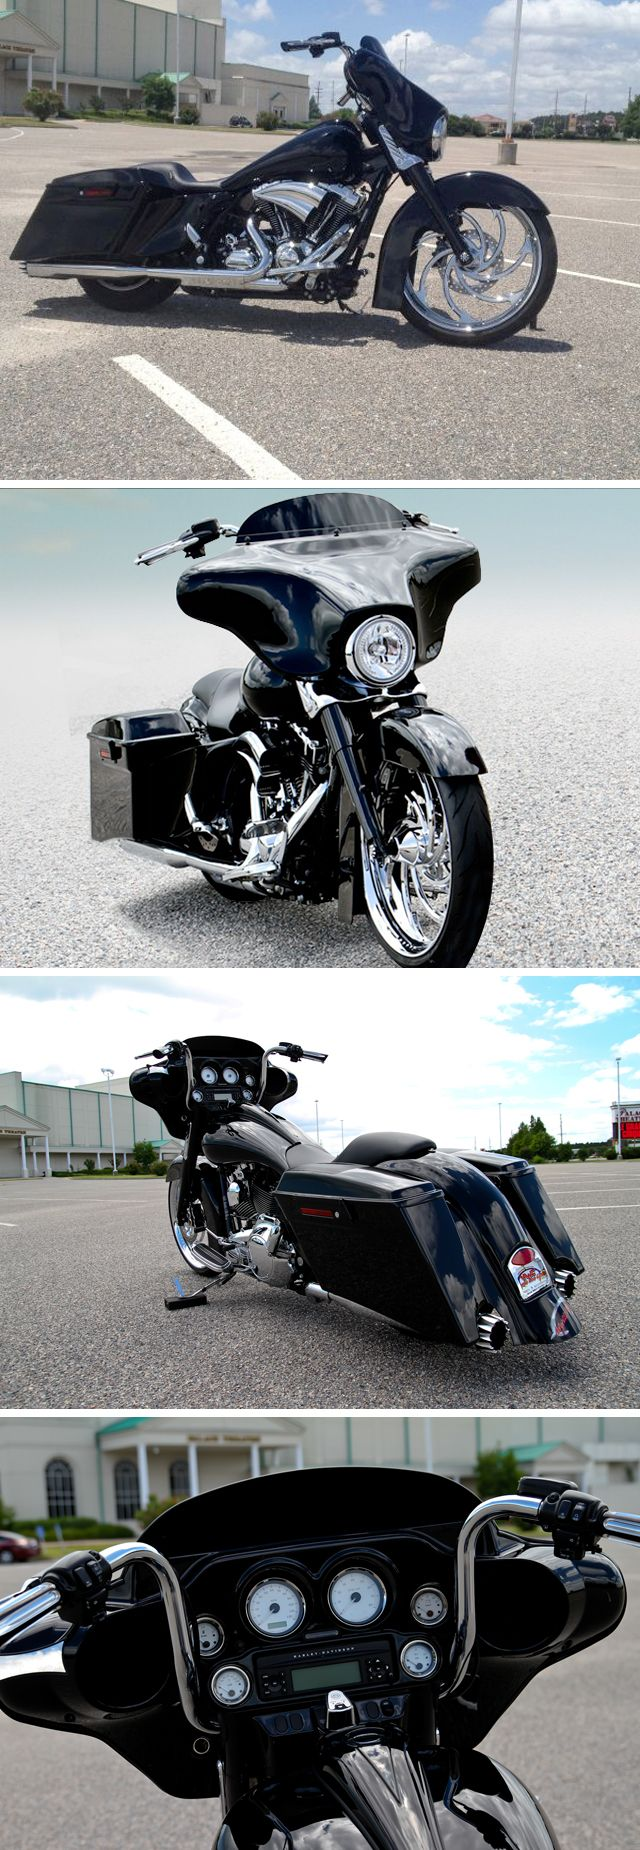 "Image Detail for - 2009 Harley Davidson FLHX Street Glide 23"" front wheel CUSTOM! - $ .. Low Storage Rates and Great Move-In Specials! Look no further Everest Self Storage is the place when you're out of space! Call today or stop by for a tour of our facility! Indoor Parking Available! Ideal for Classic Cars, Motorcycles, ATV's & Jet Skies. Make your reservation today! 626-288-8182 ."